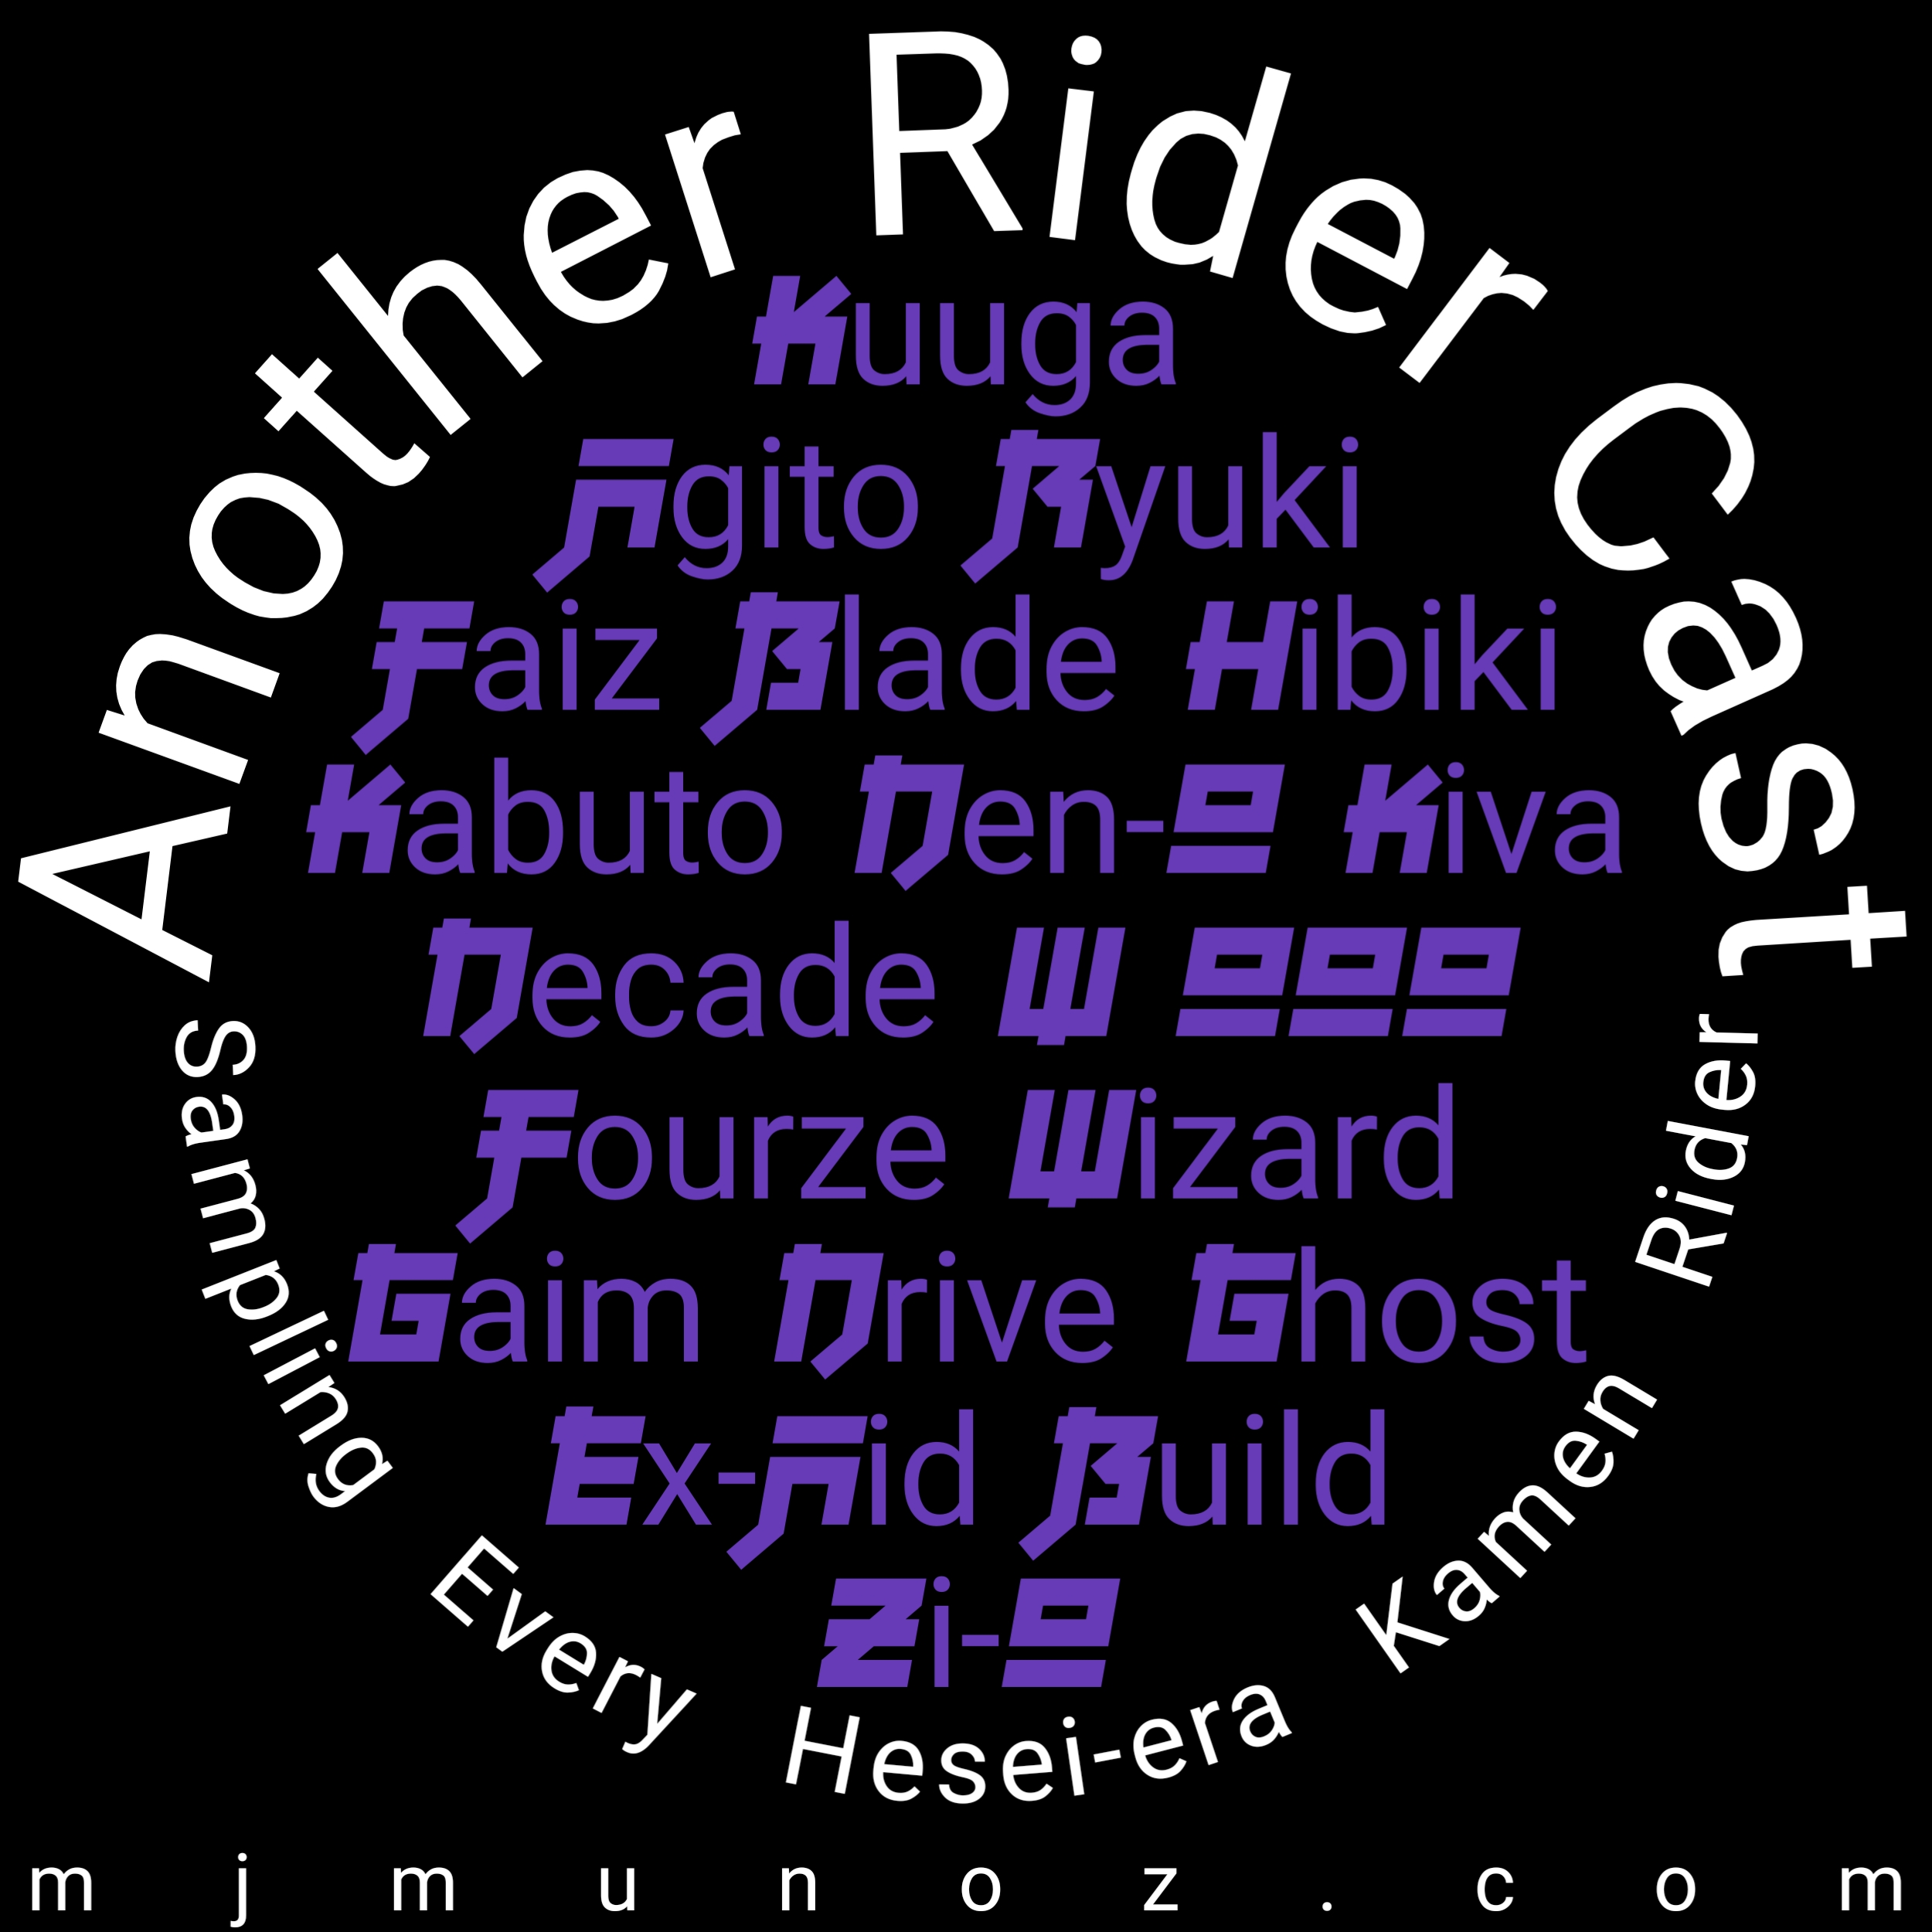 album, podcast, pod, gu, anothr rider cast, ride, kamen rider